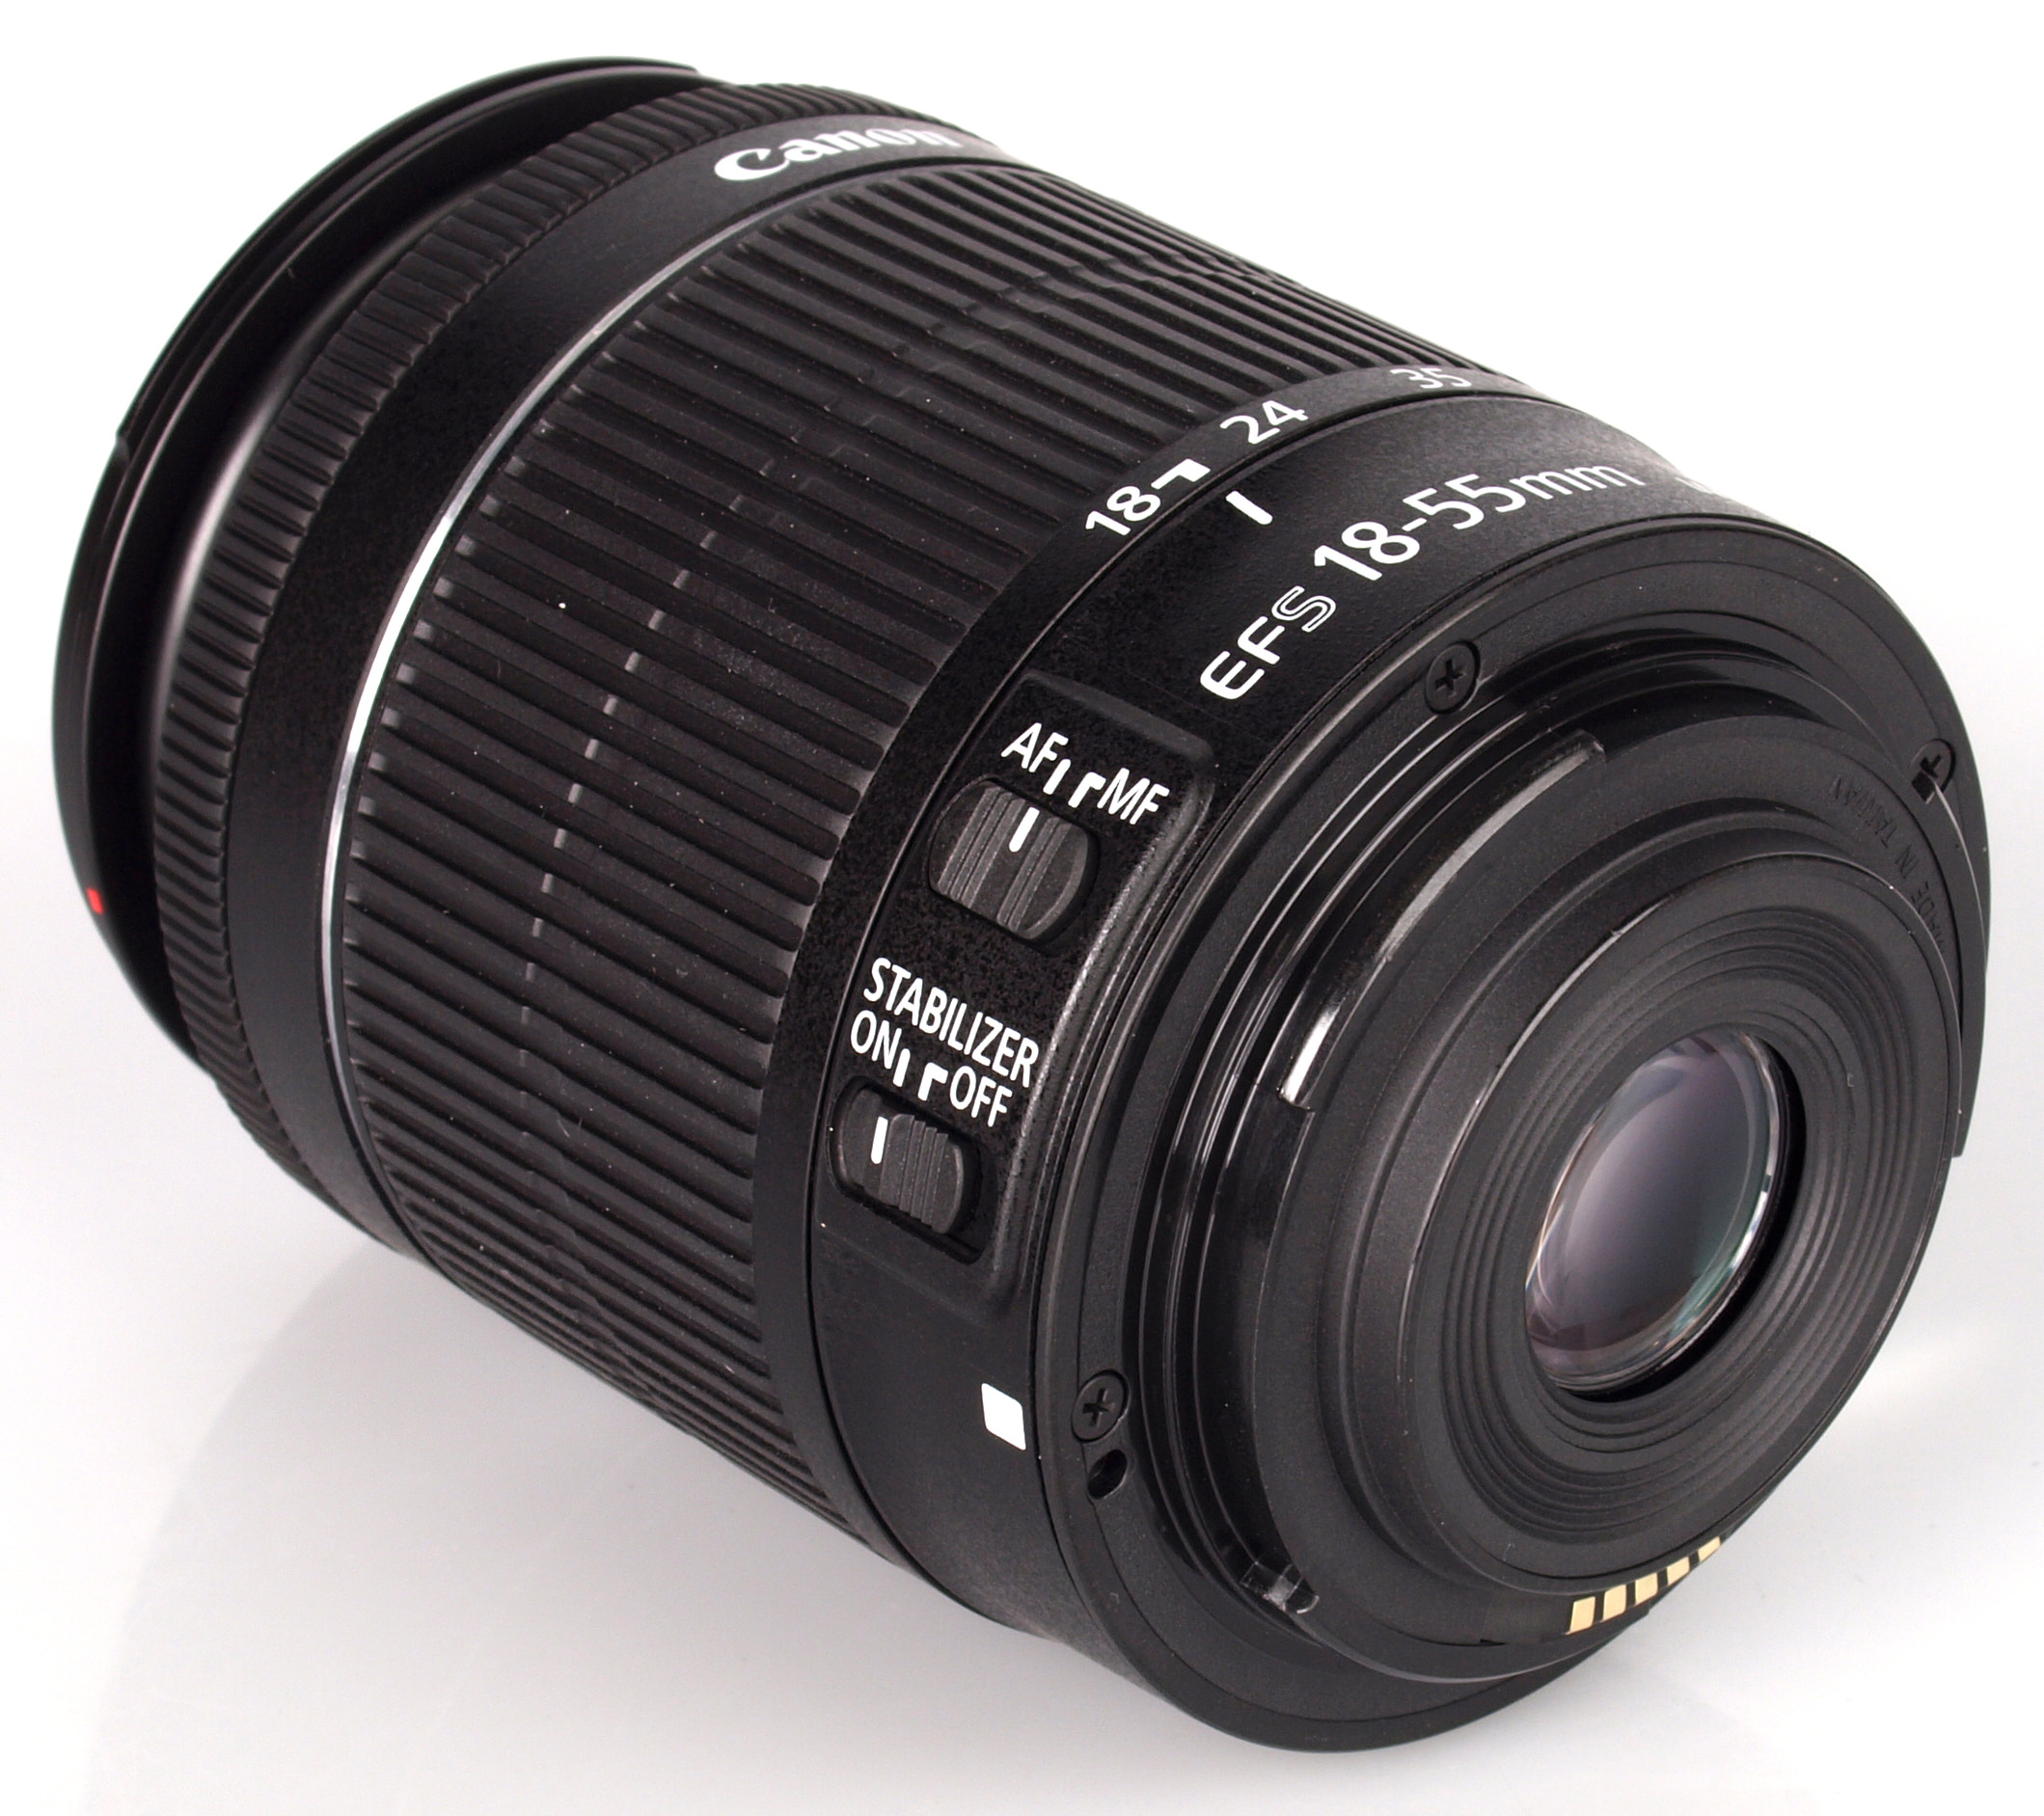 Canon EF-S 18-55mm 1:3.5-5.6 IS review: Digital Photography Review